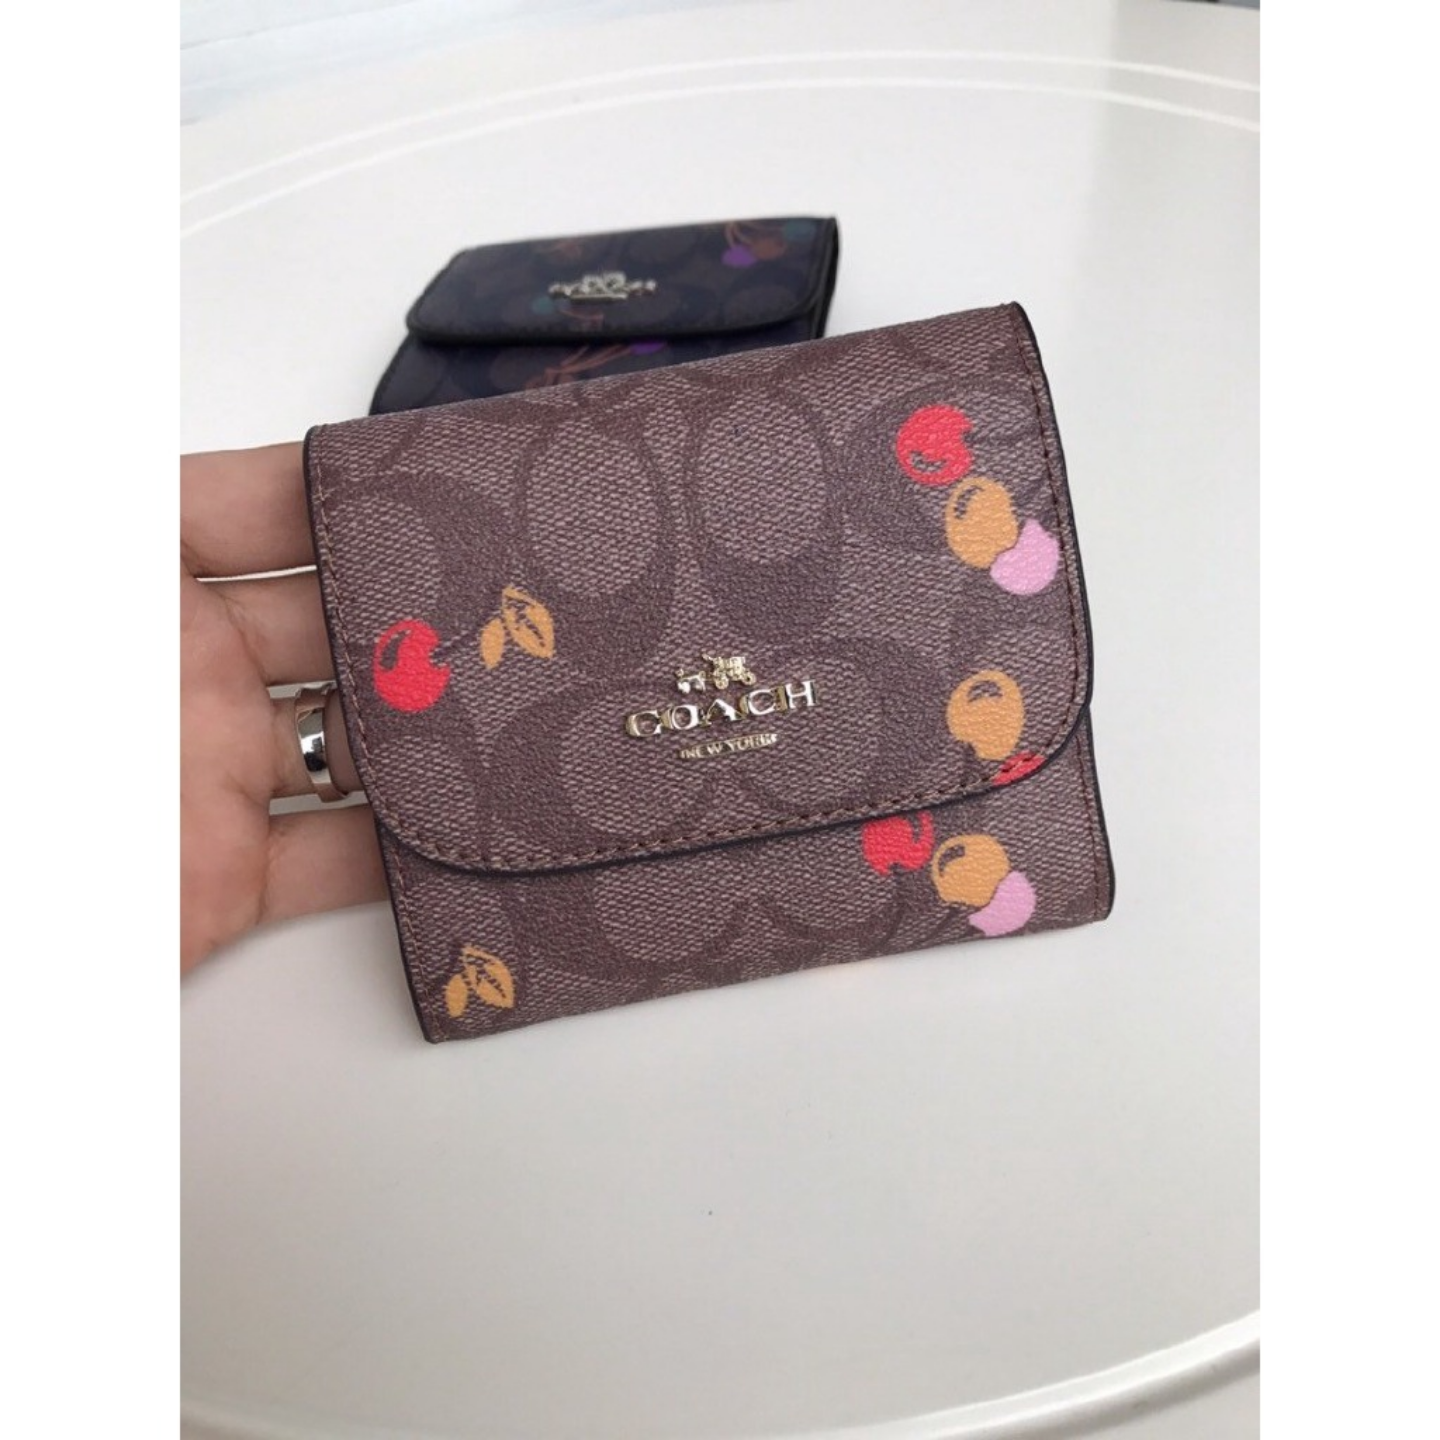 (SG COD)   Women's Coach Wallets Wallets and Cardholders F31939 Small cherry pattern wallet Short Wallets